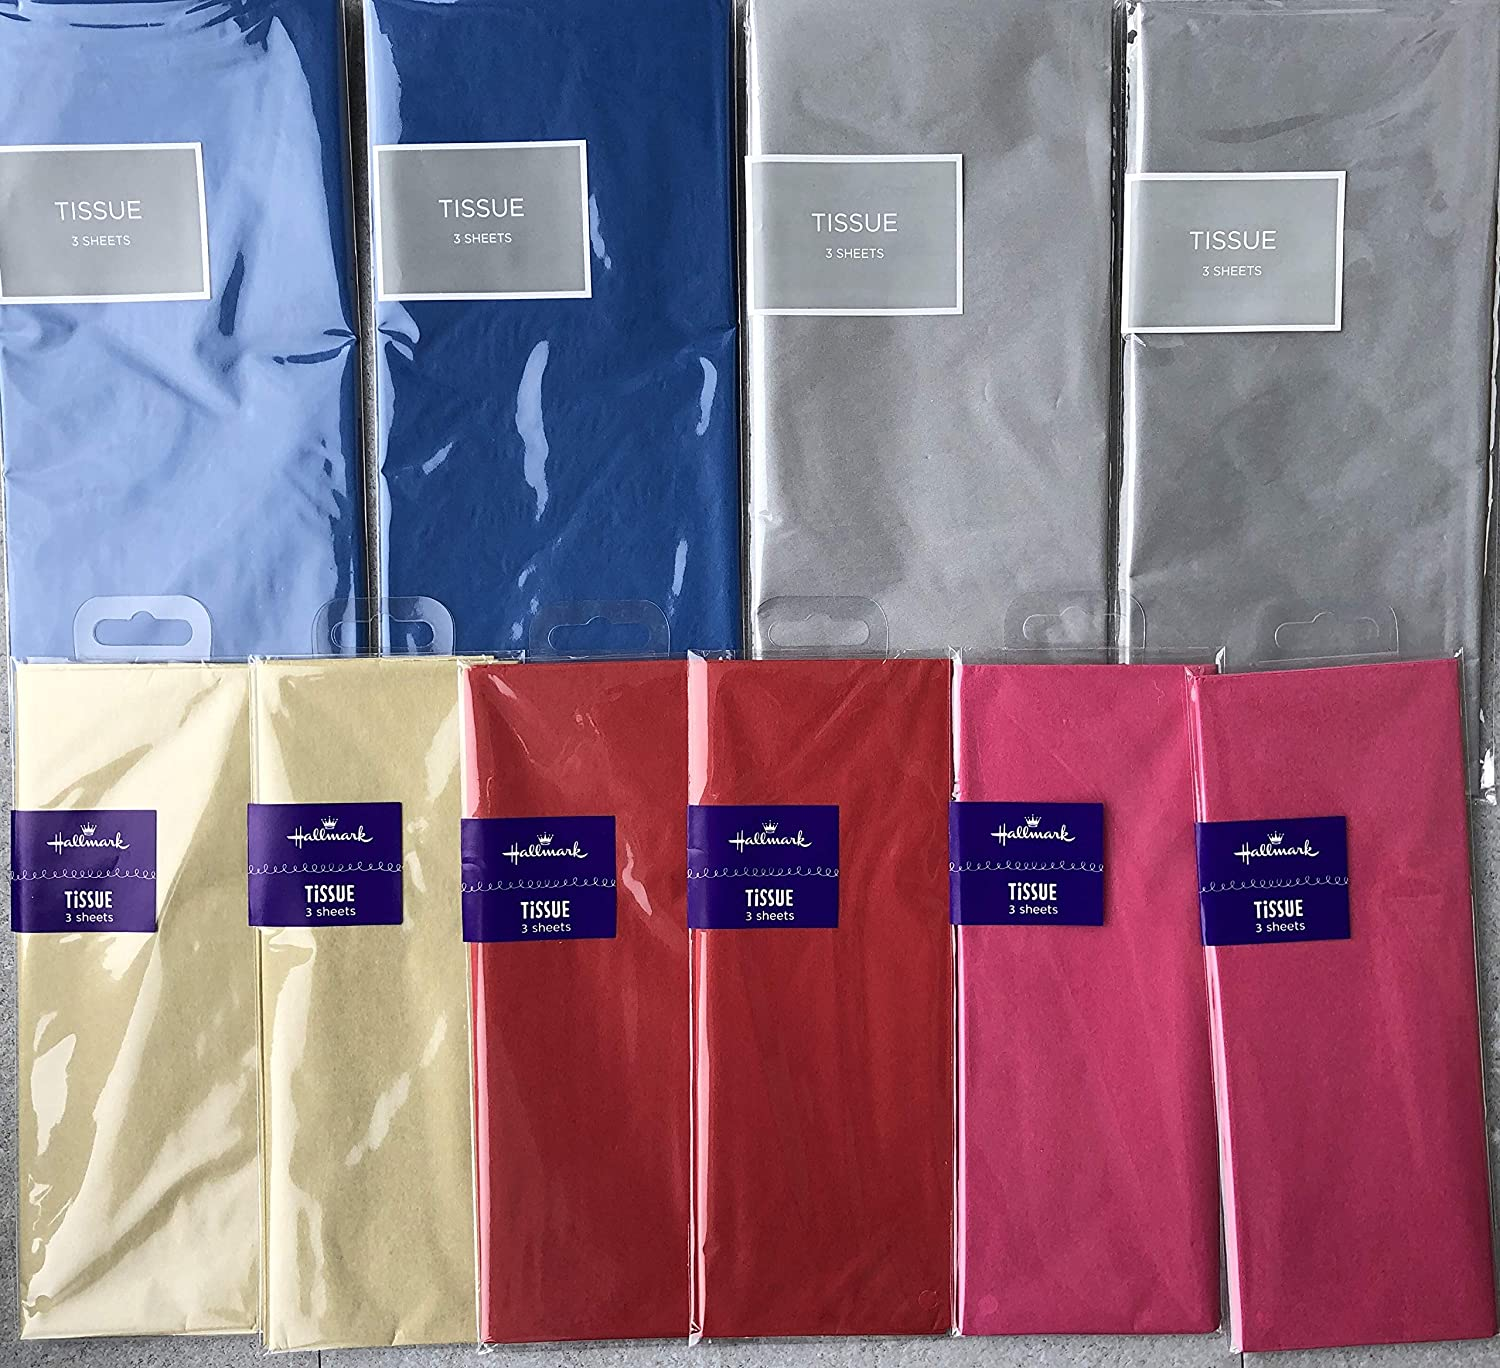 10 Mixed Packs Premium Hallmark Tissue Paper Red Silver 2 Packs of Each Colour Blue Hot Pink 30 Sheets Gold